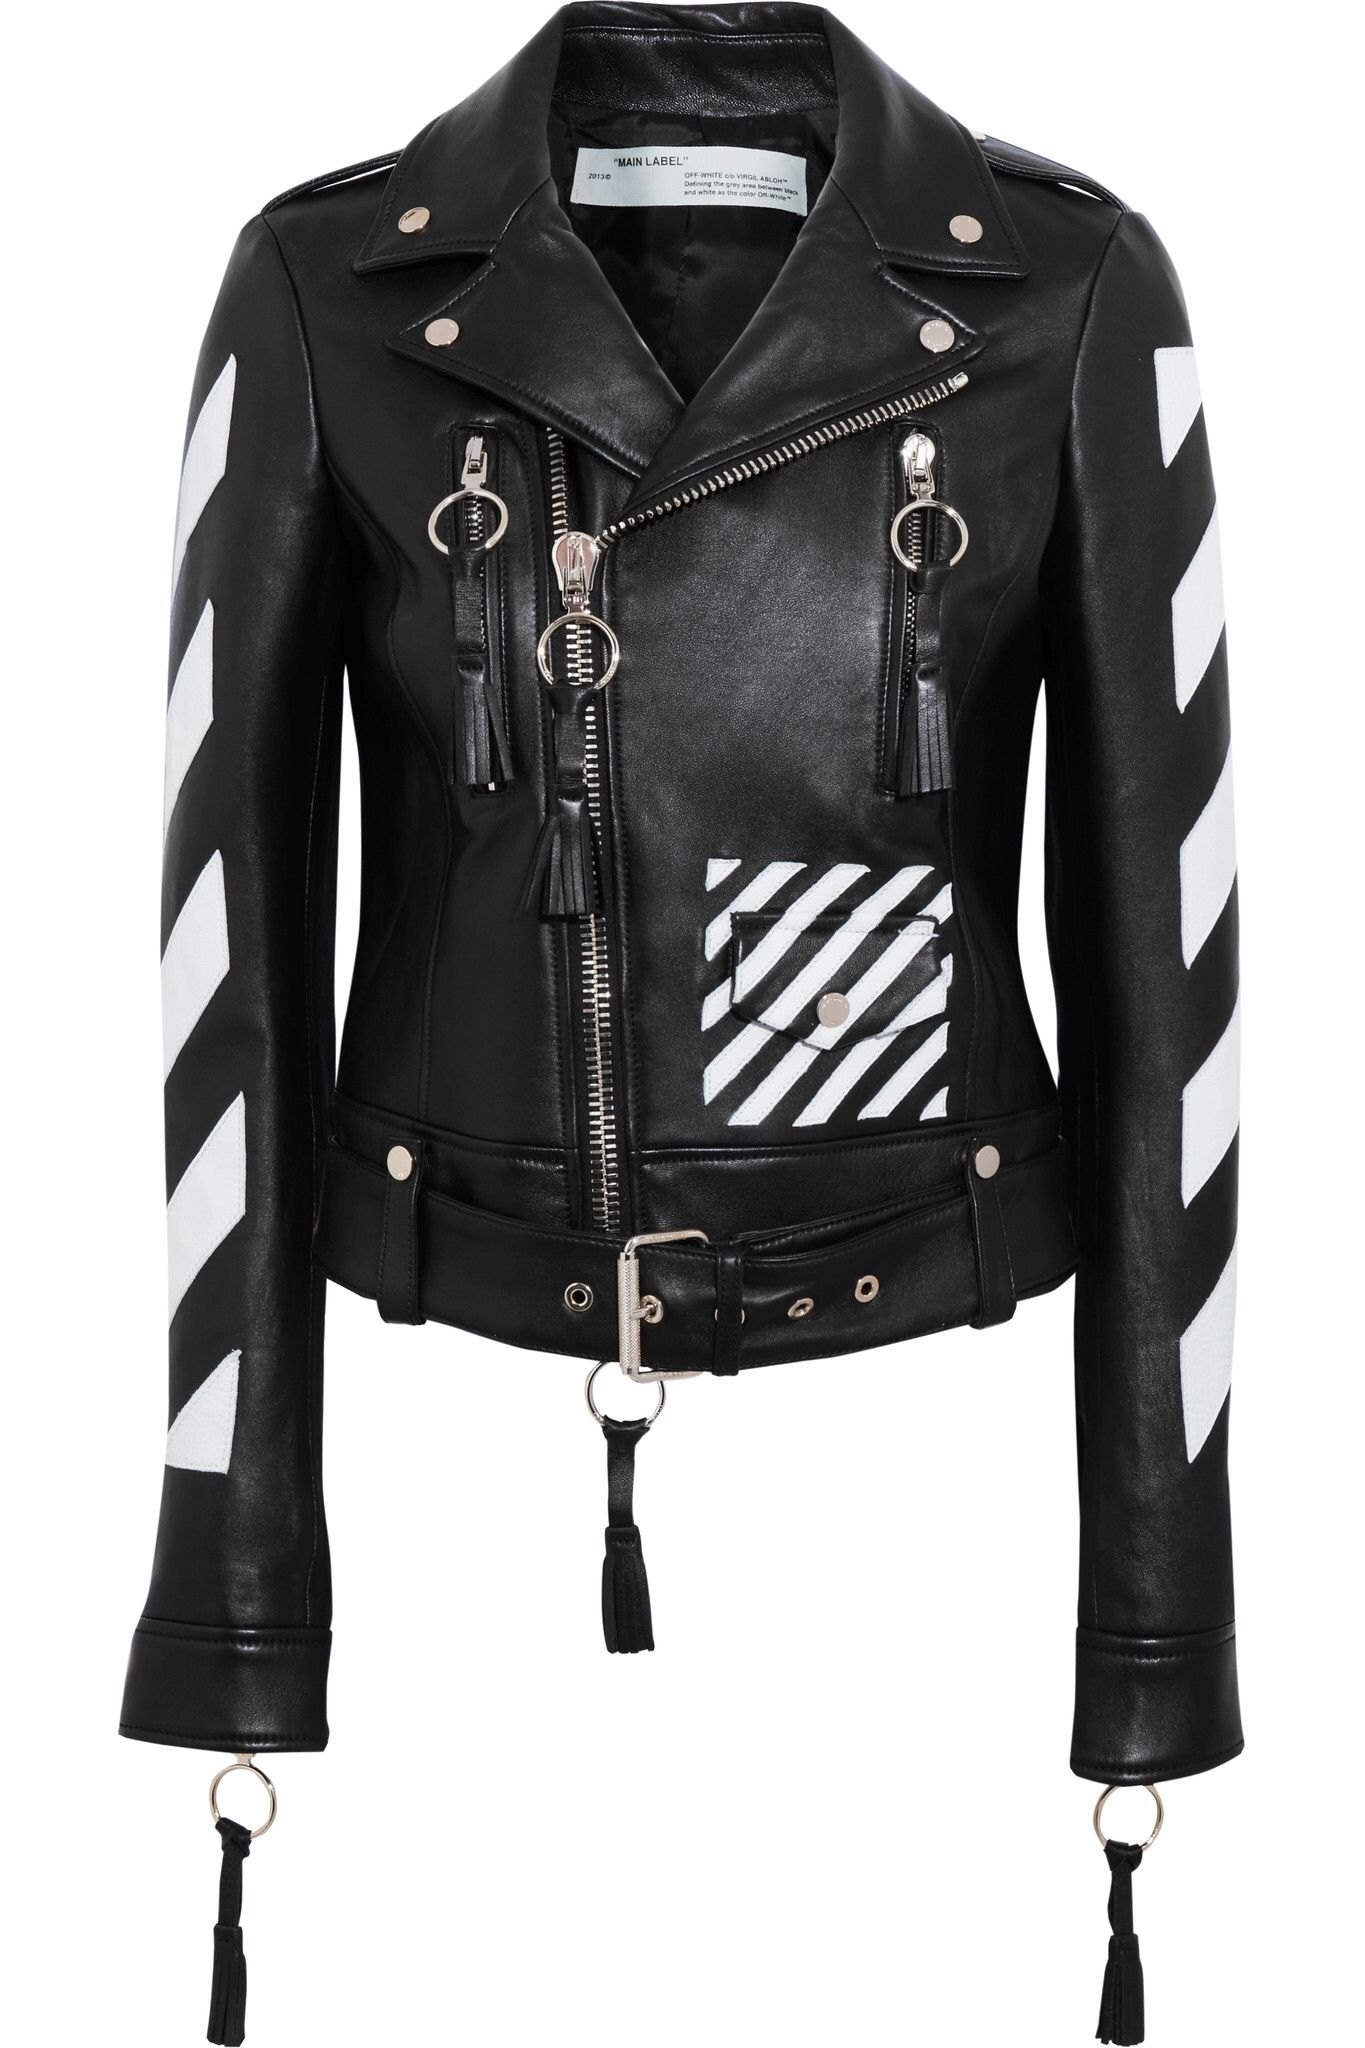 Off White Off white jacket, Jackets, Leather jacket